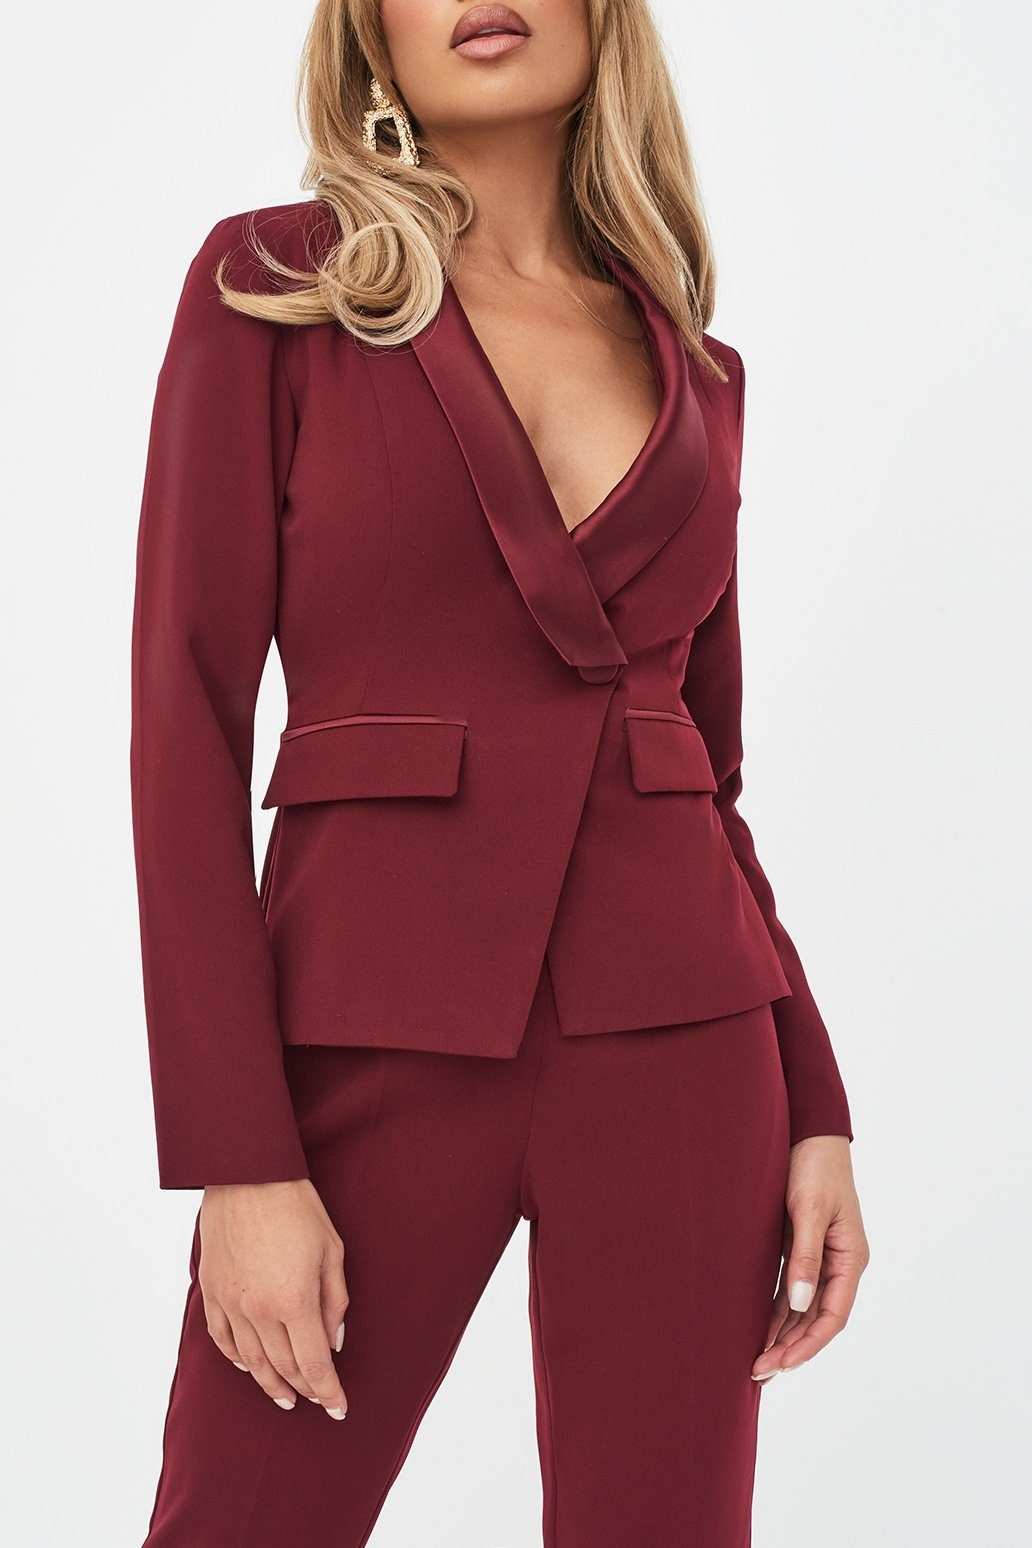 Rosie Connolly Cut Out Back Satin Mix Tailored Jumpsuit in Burgundy